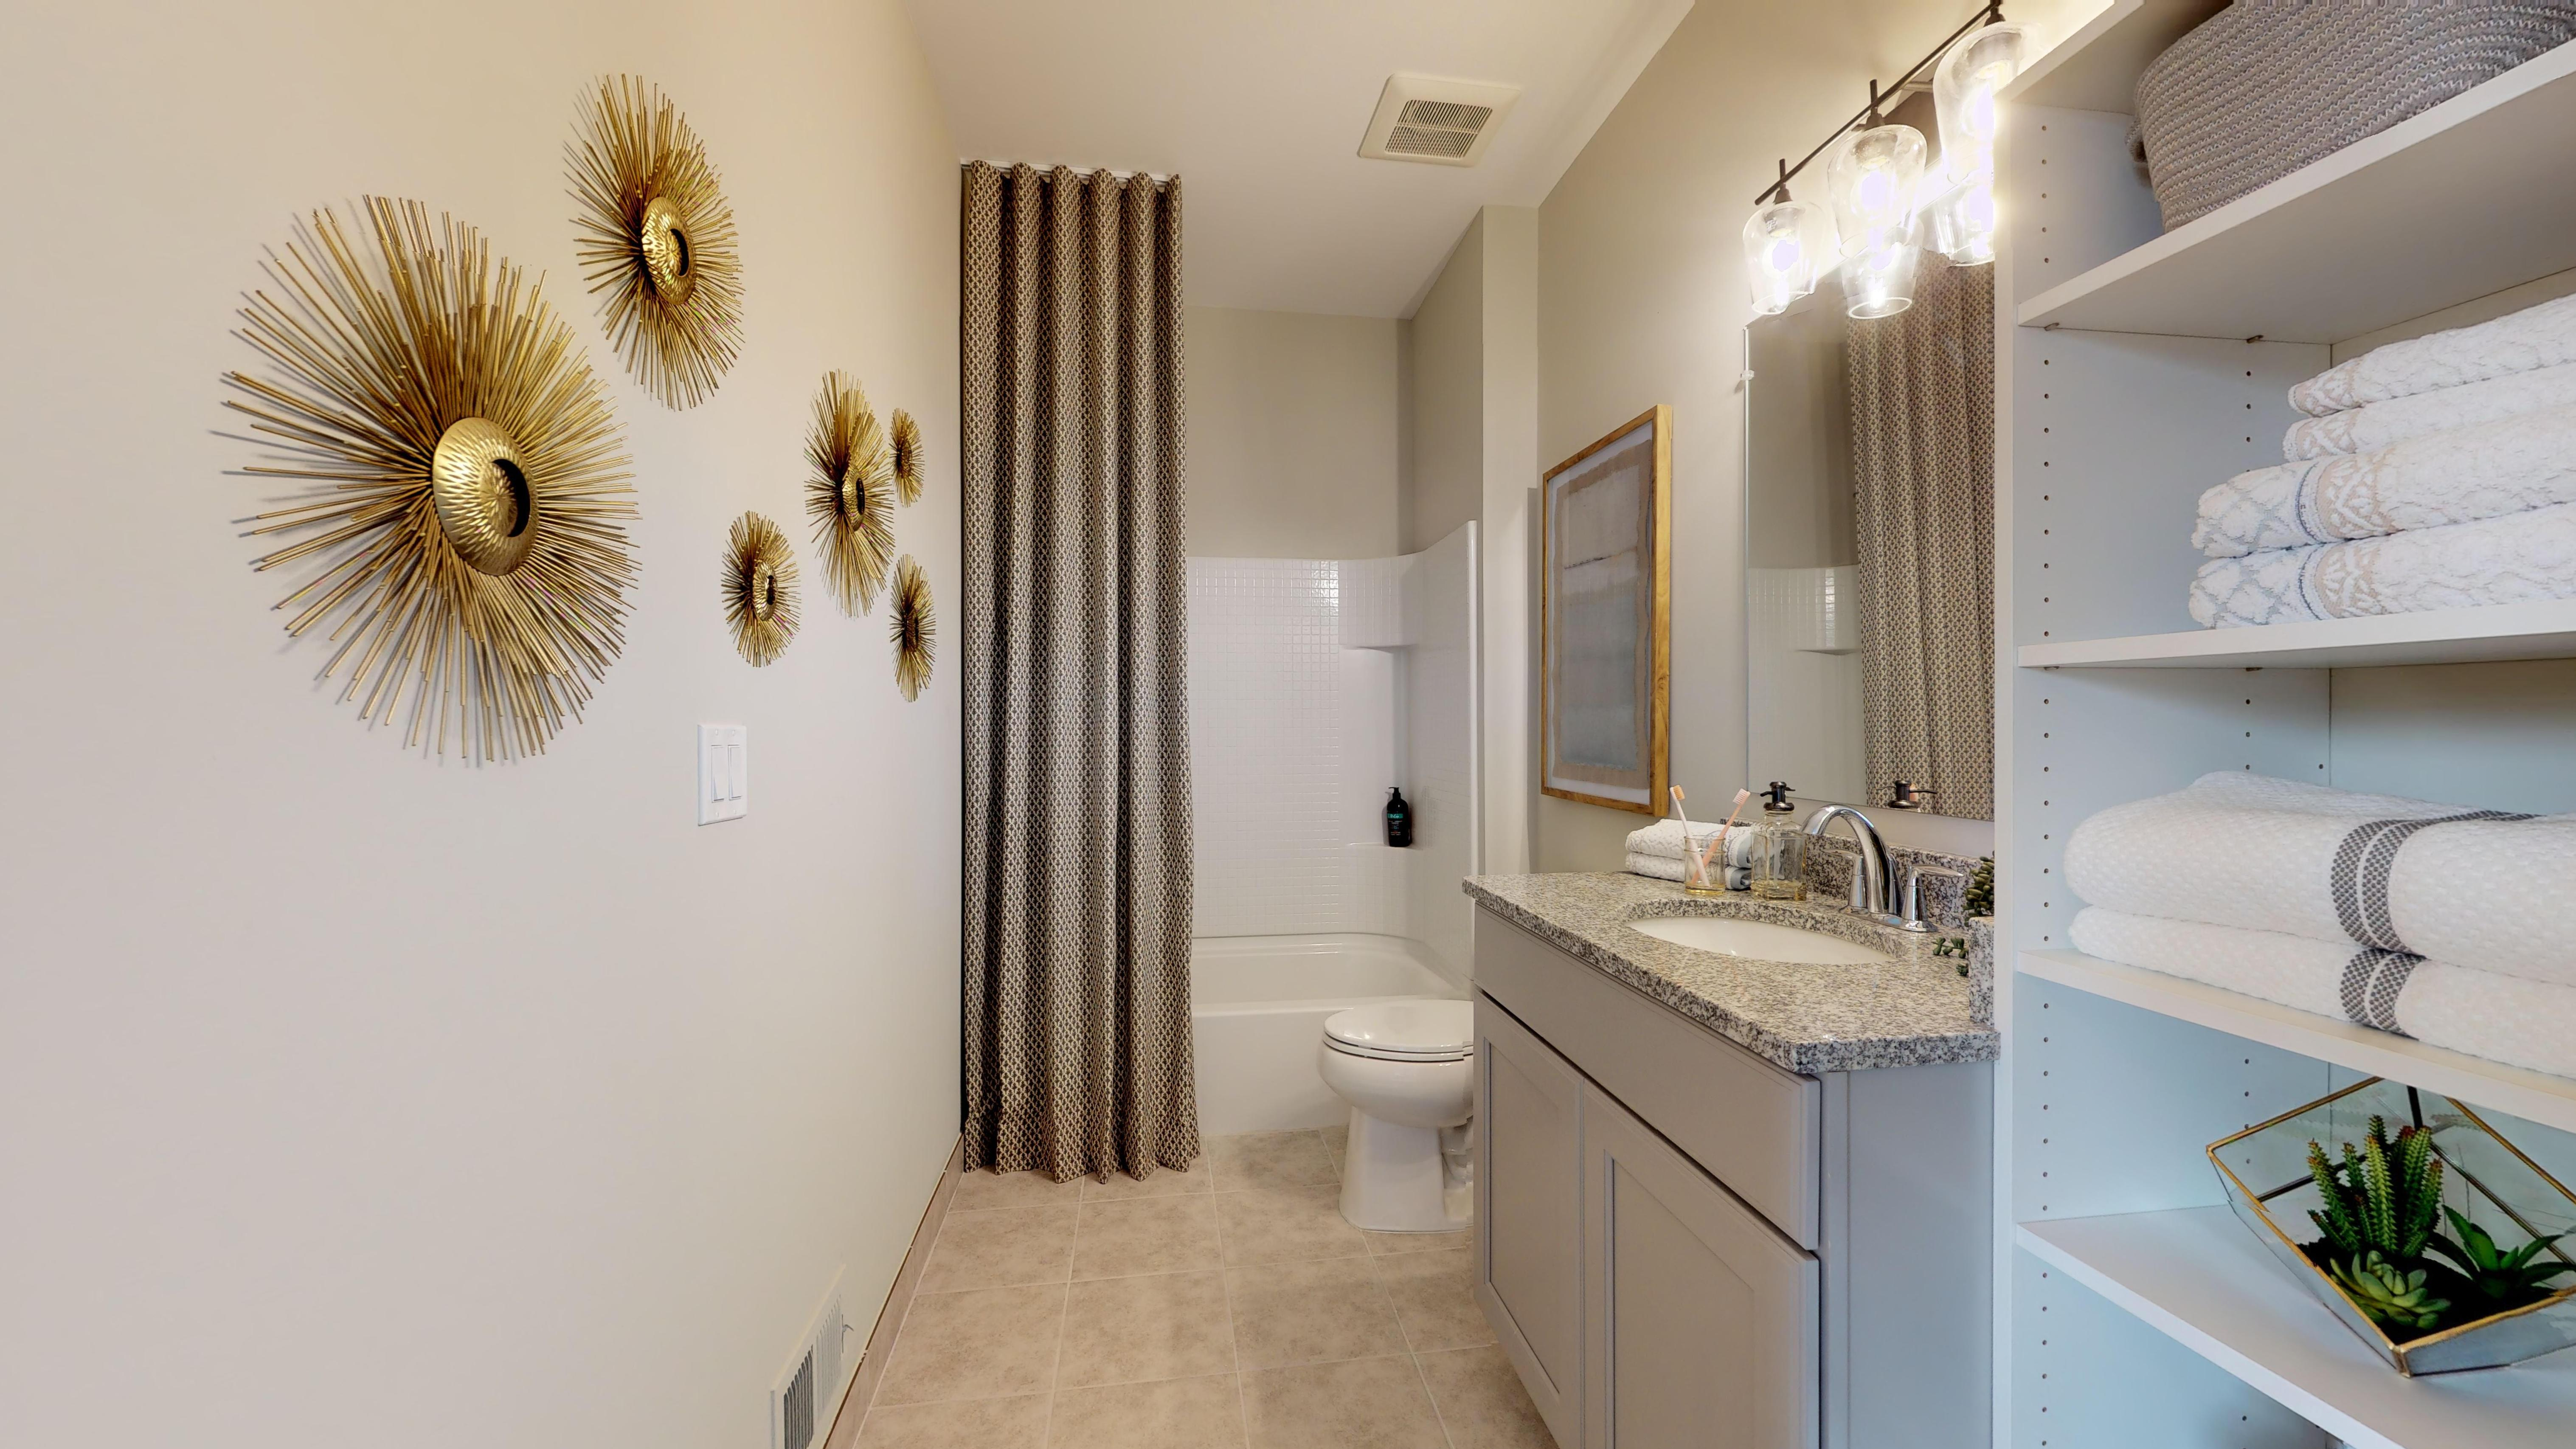 Bathroom featured in The Charlevoix By AP Builders in Detroit, MI